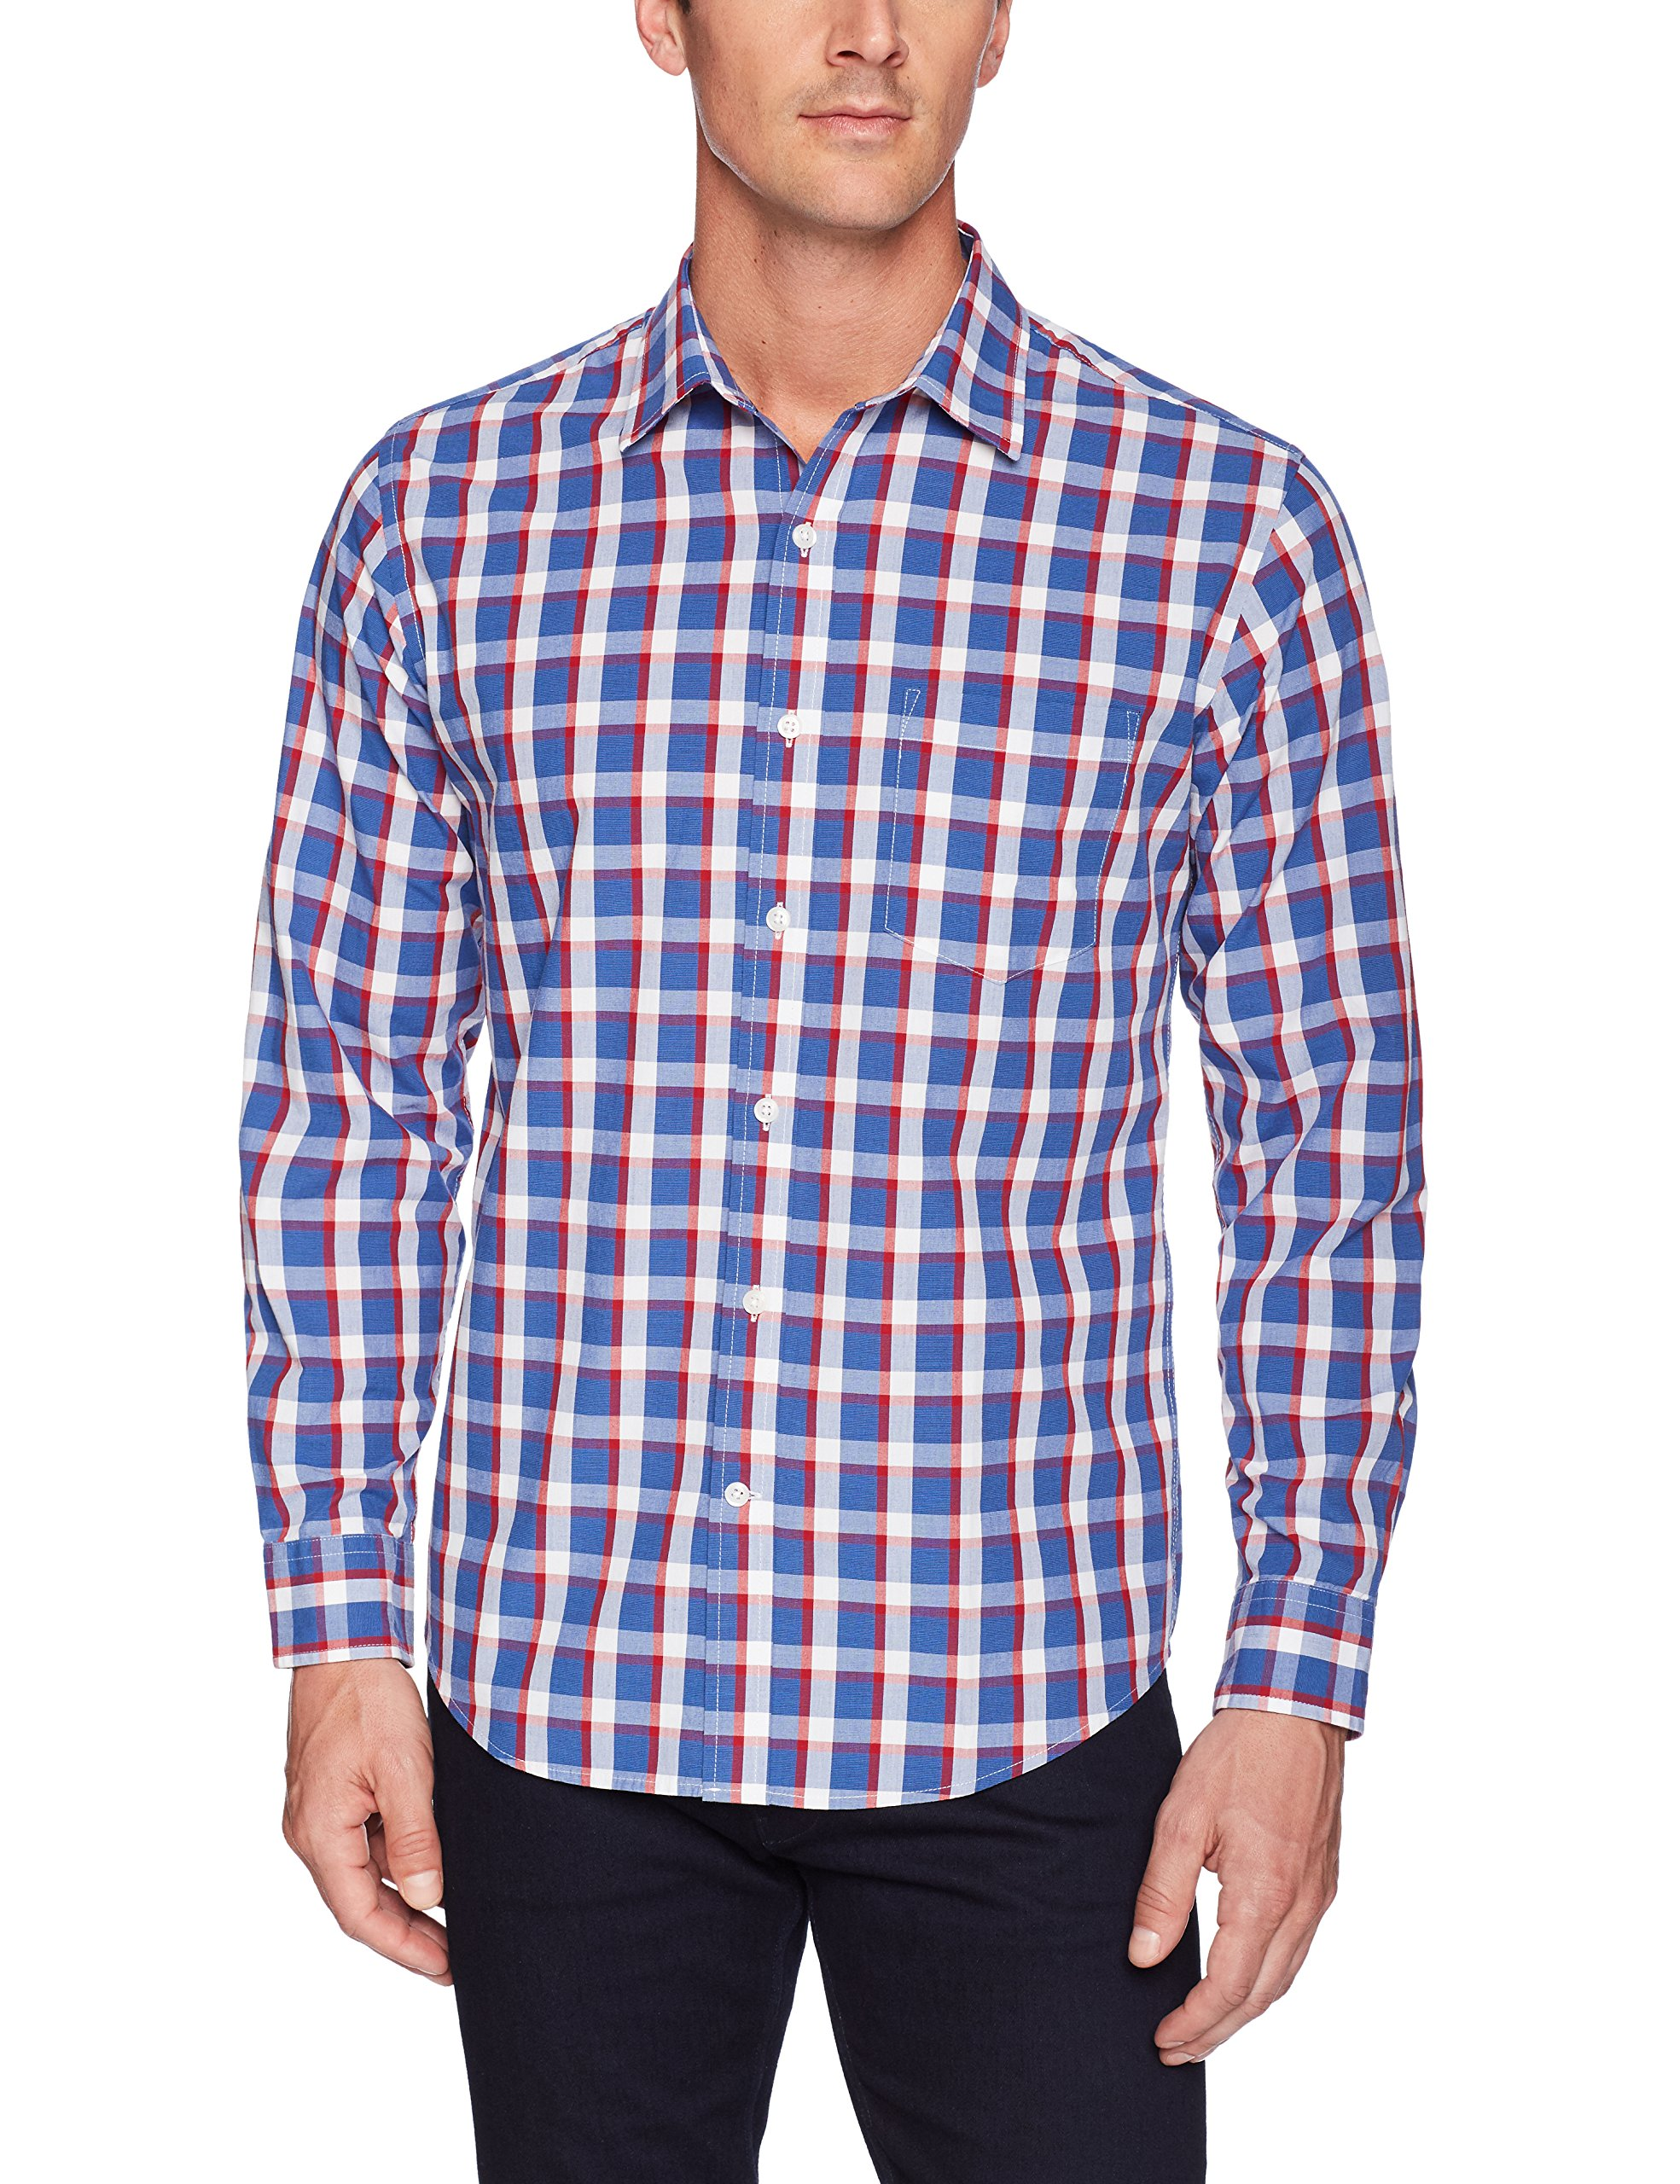 Amazon Essentials Men's Regular-Fit Long-Sleeve Plaid Shirt, blue/red plaid, Large by Amazon Essentials (Image #3)